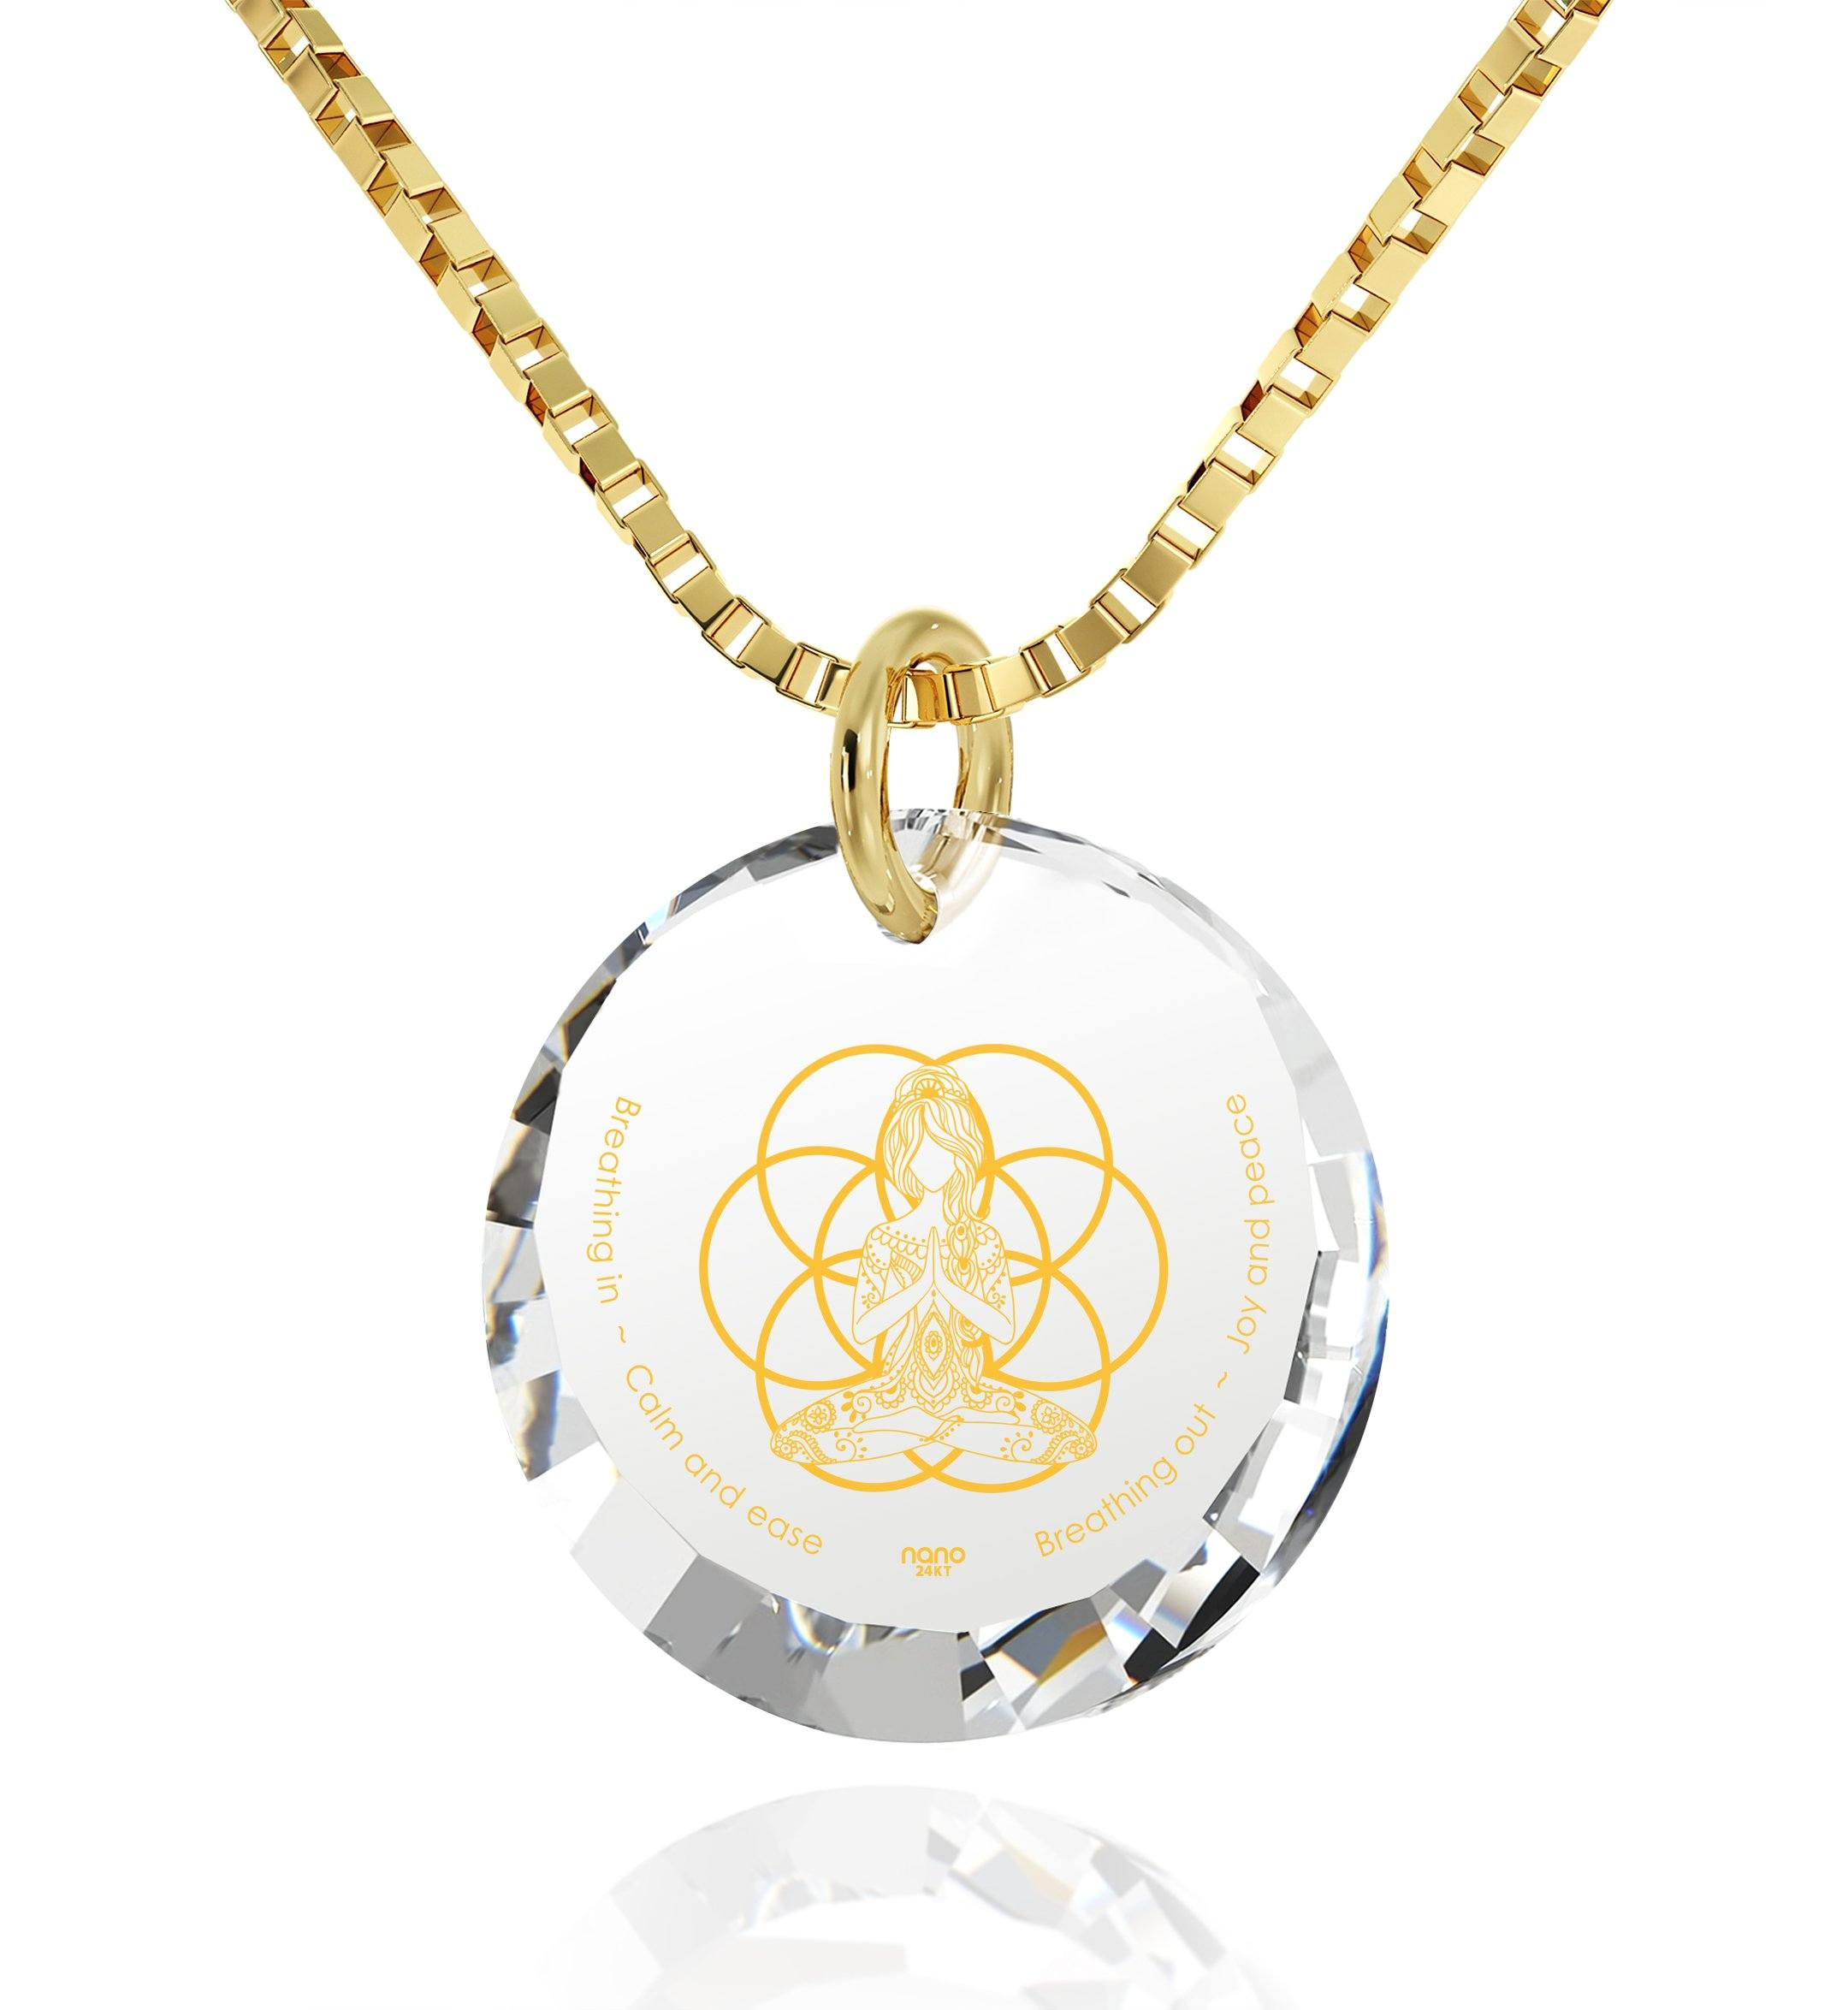 """Breathe in, Breathe out"" Engraved in 24k, Buddha Necklace with CZ Stone, Meditation Gifts, Gold Plated Jewellery"